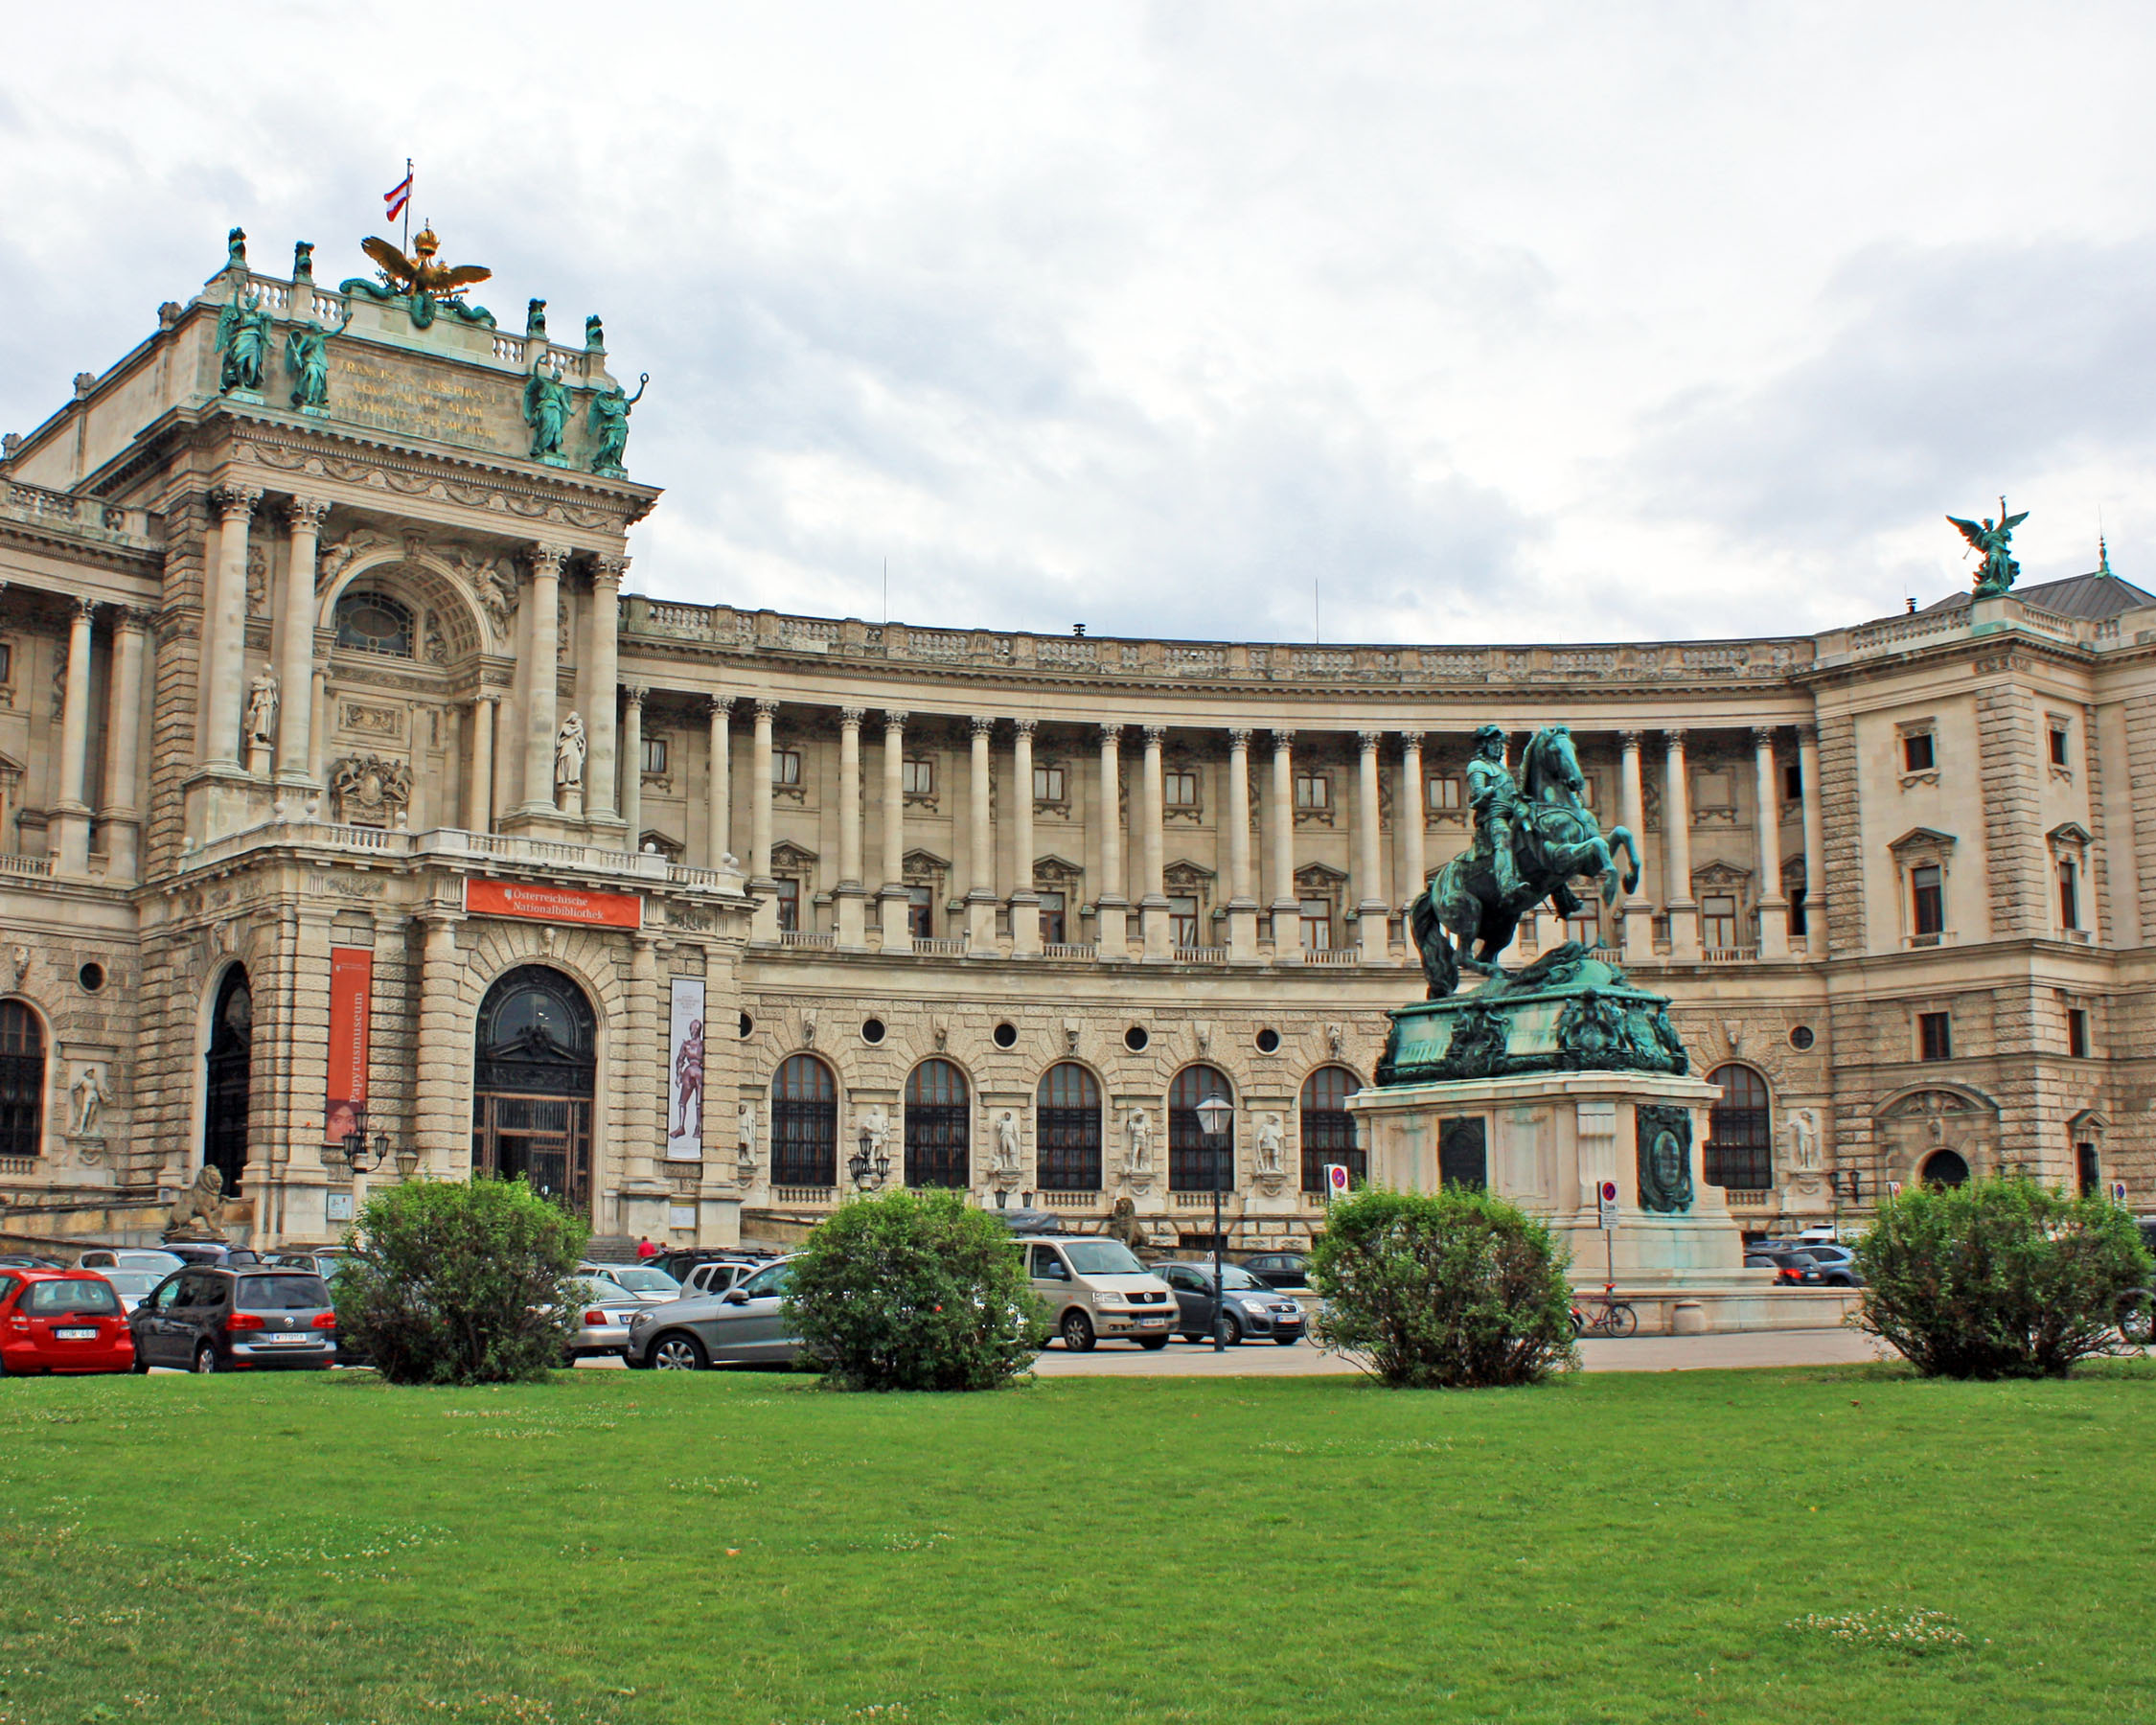 The Austrian National Library, located in the Hofburg Palace.